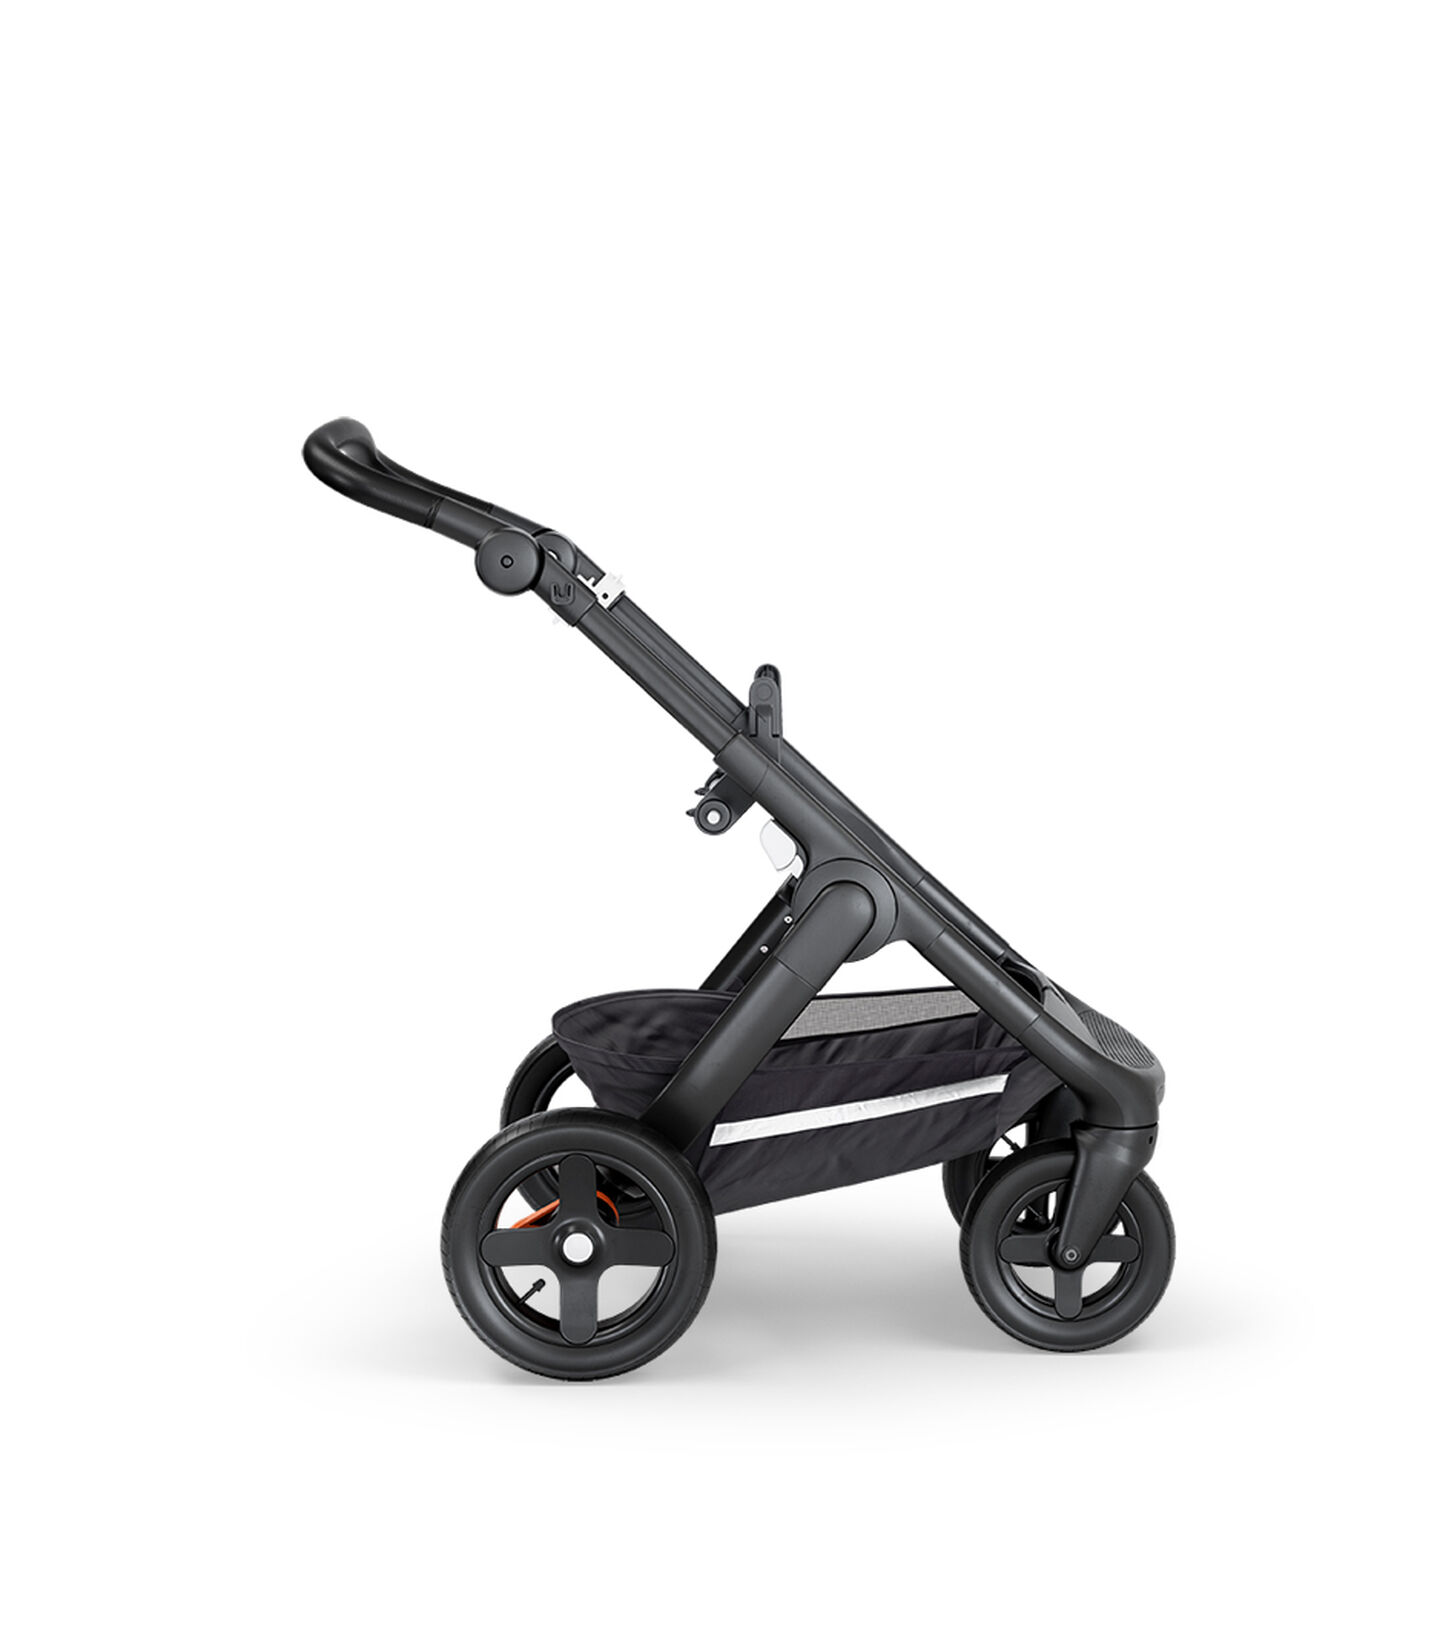 Stokke® Trailz™ with Black Chassis, Black Leatherette and Terrain Wheels.